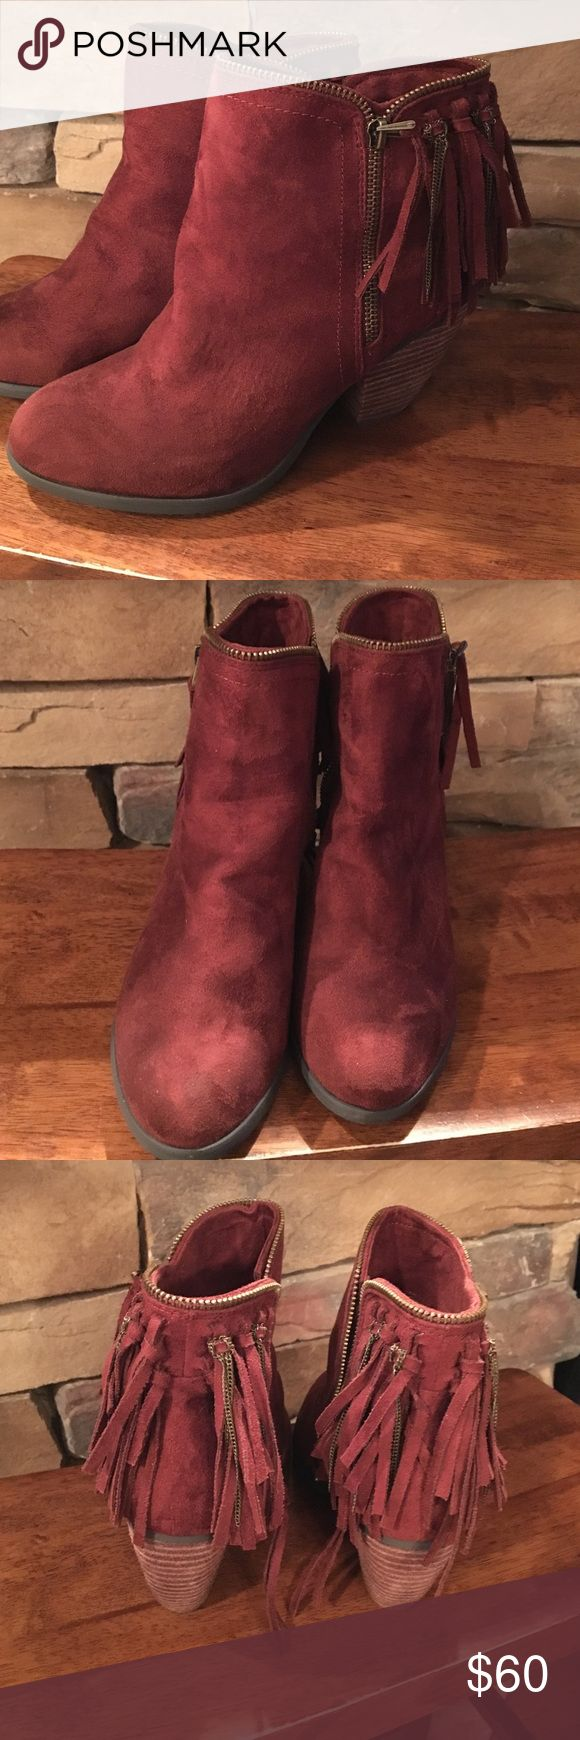 Not rated boots Not rated boots. Women's size 8. Reddish  brown color. Wore once Not Rated Shoes Ankle Boots & Booties